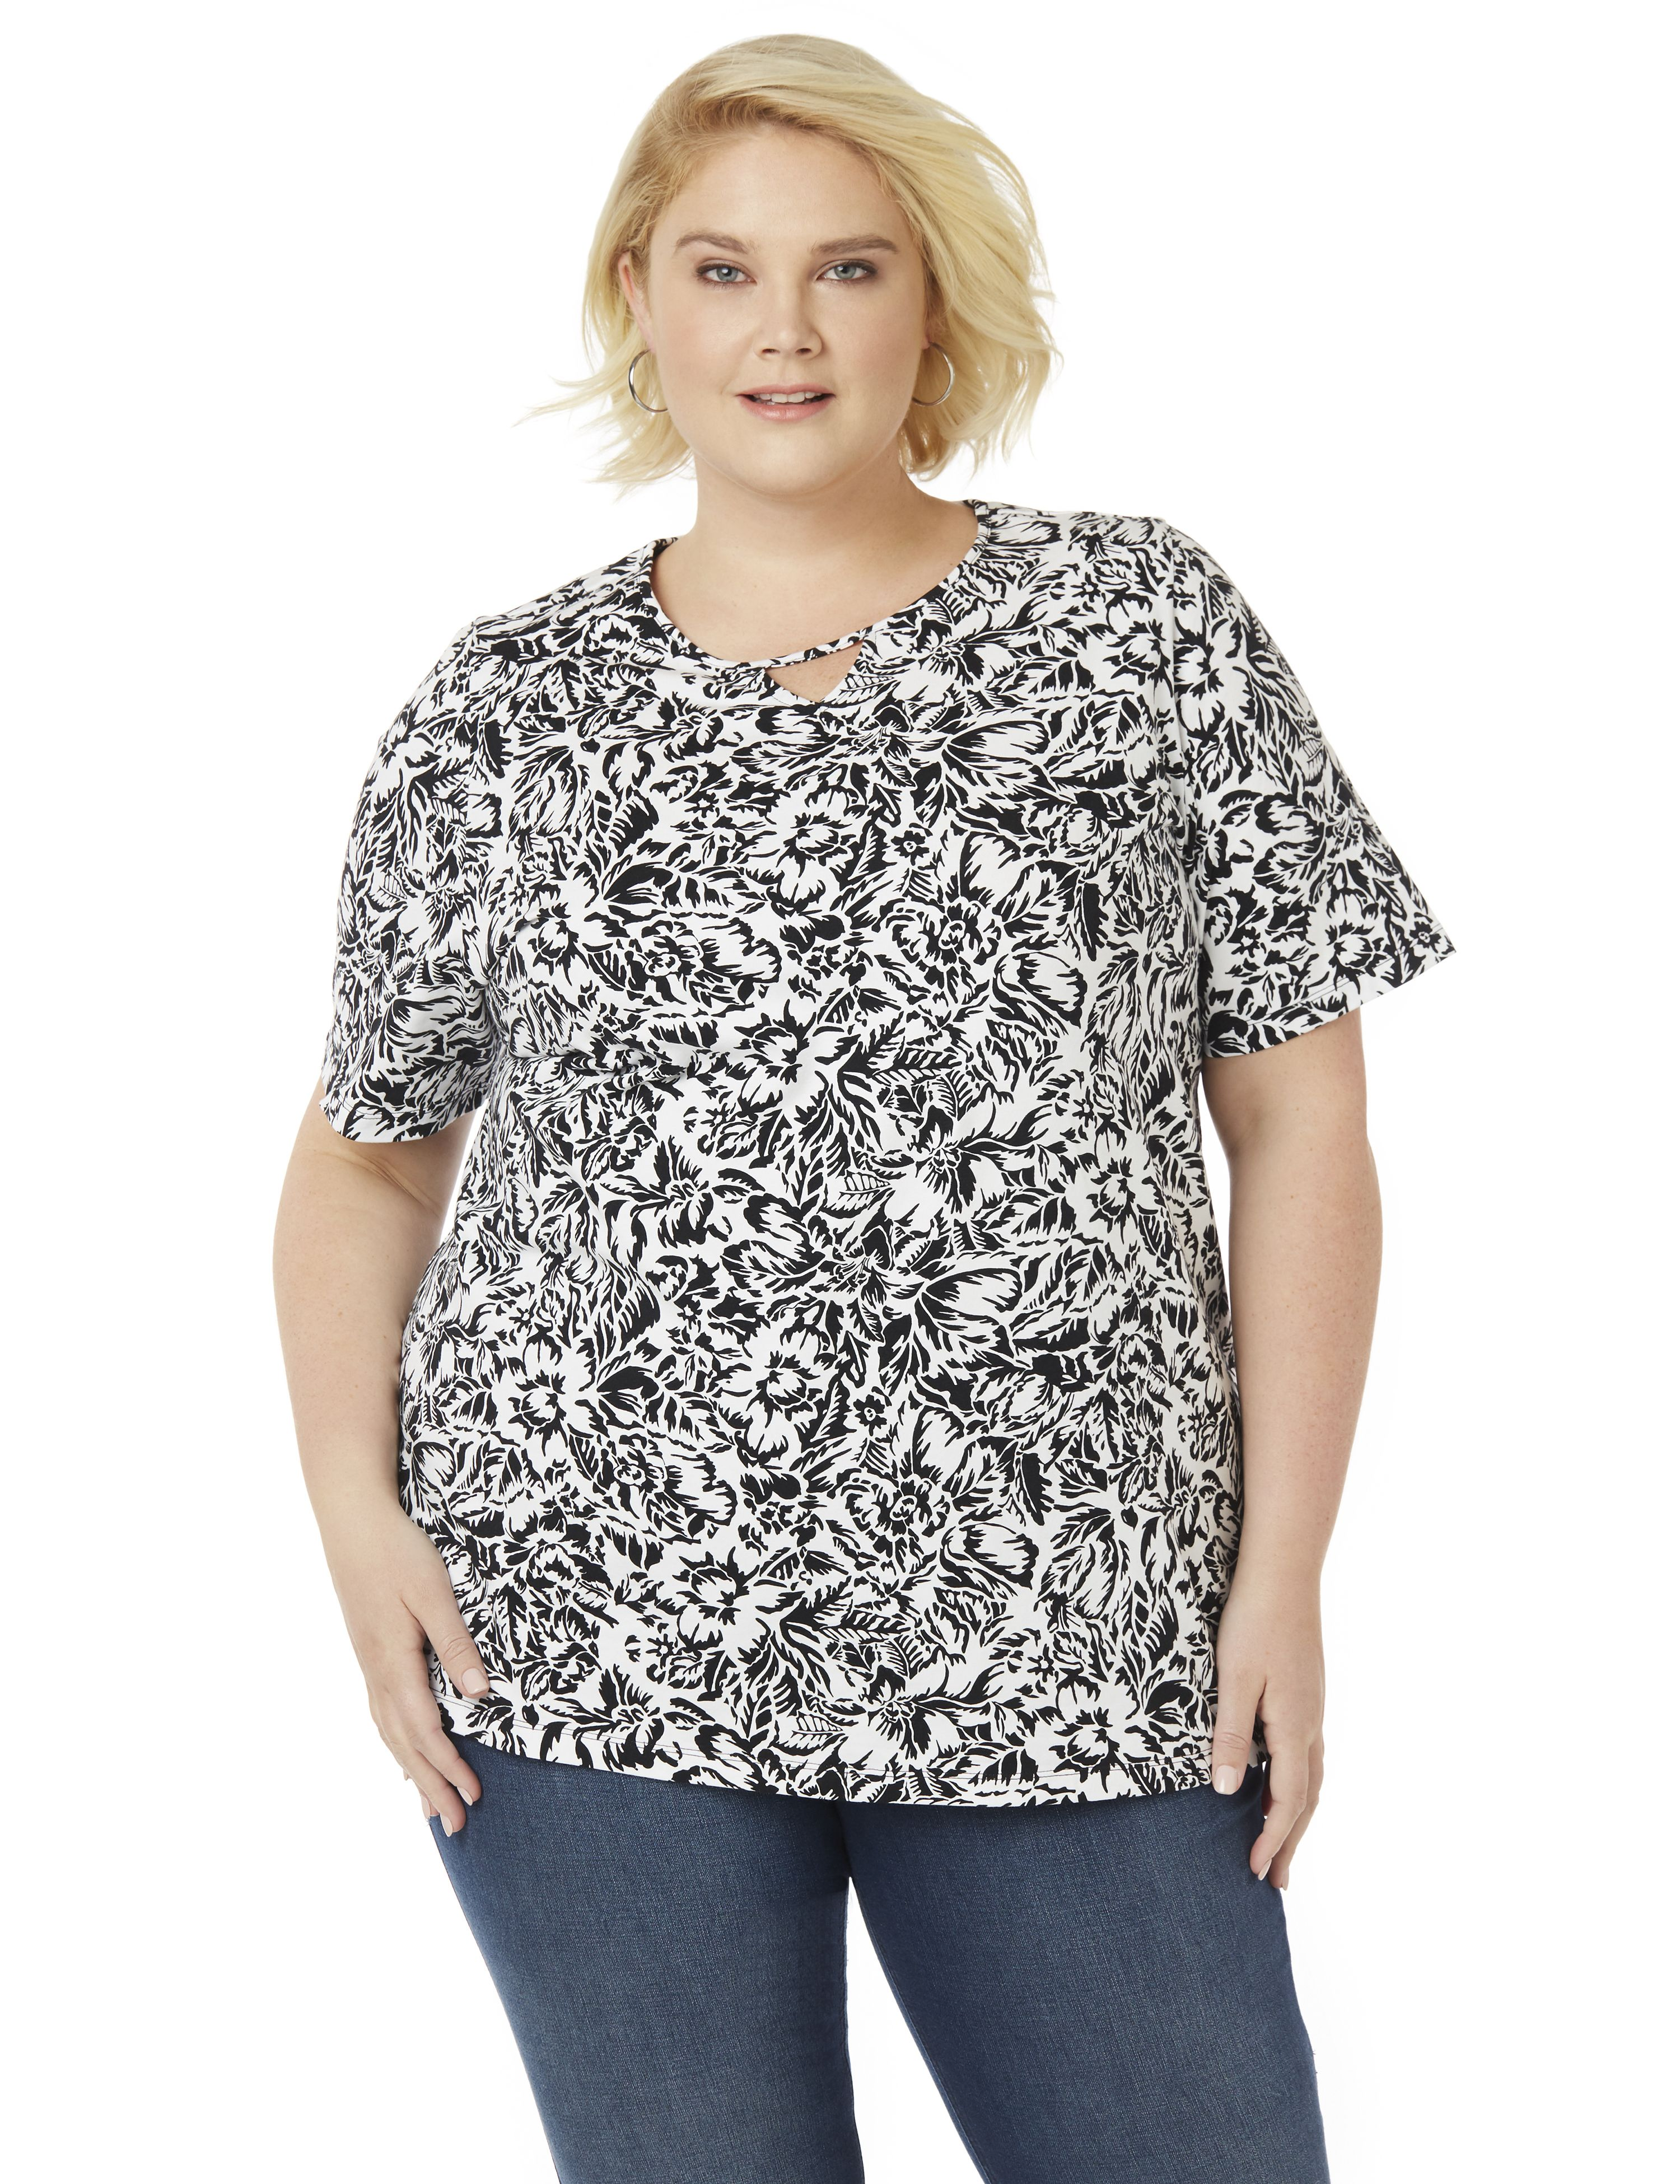 Etched Floral Top 300062271